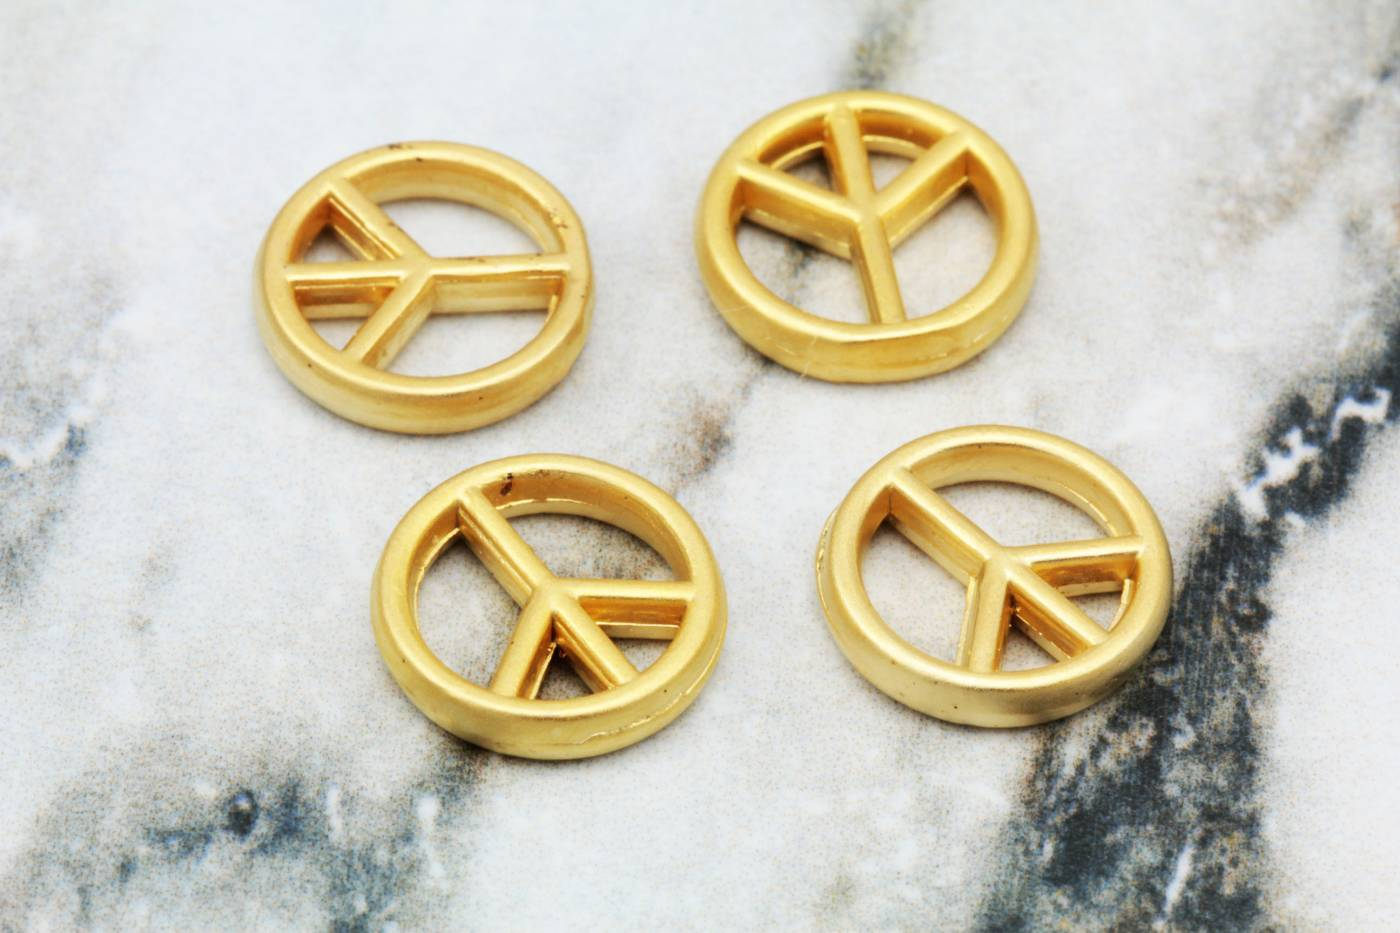 gold-metal-bohem-peace-sign-charms.jpg